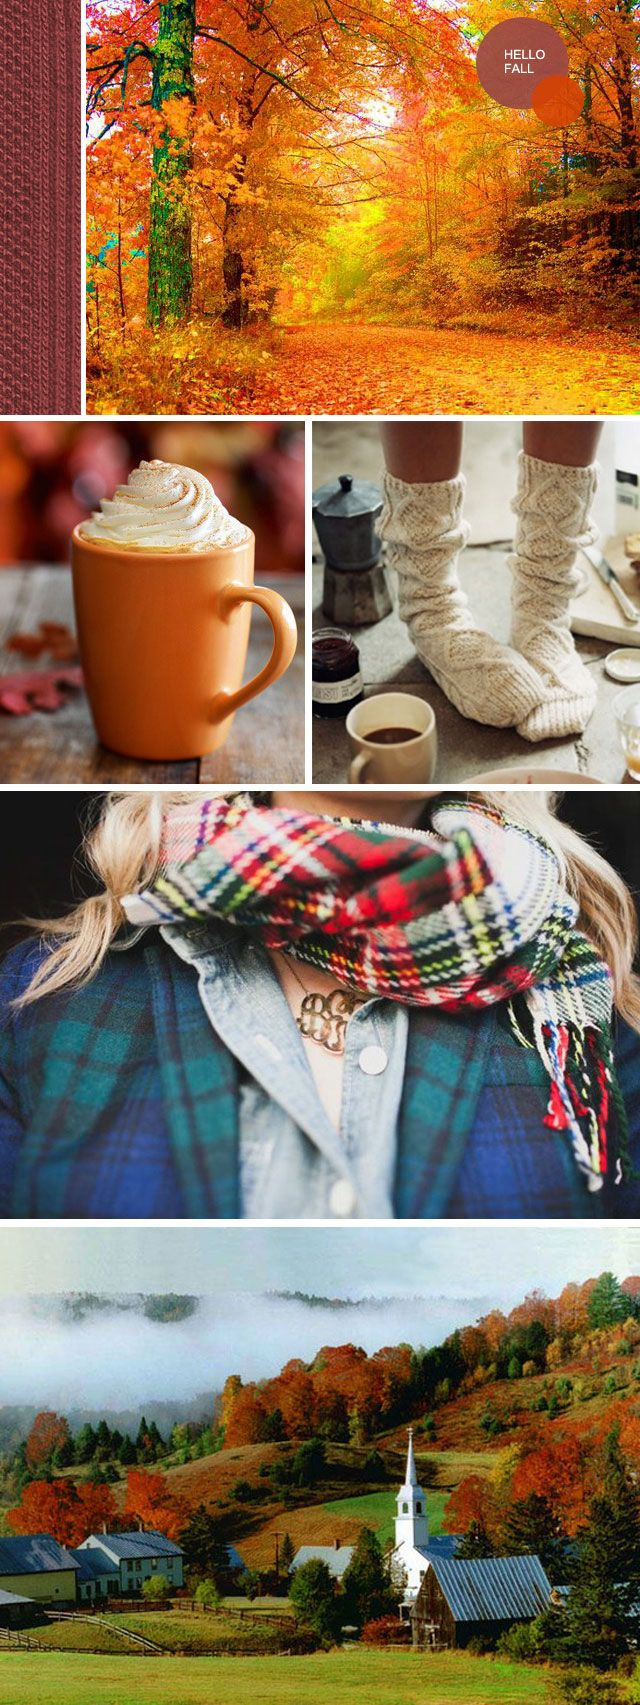 fall time. ready for apple cider, cranberry sierra mist, pumpkin delights & scarves!!!